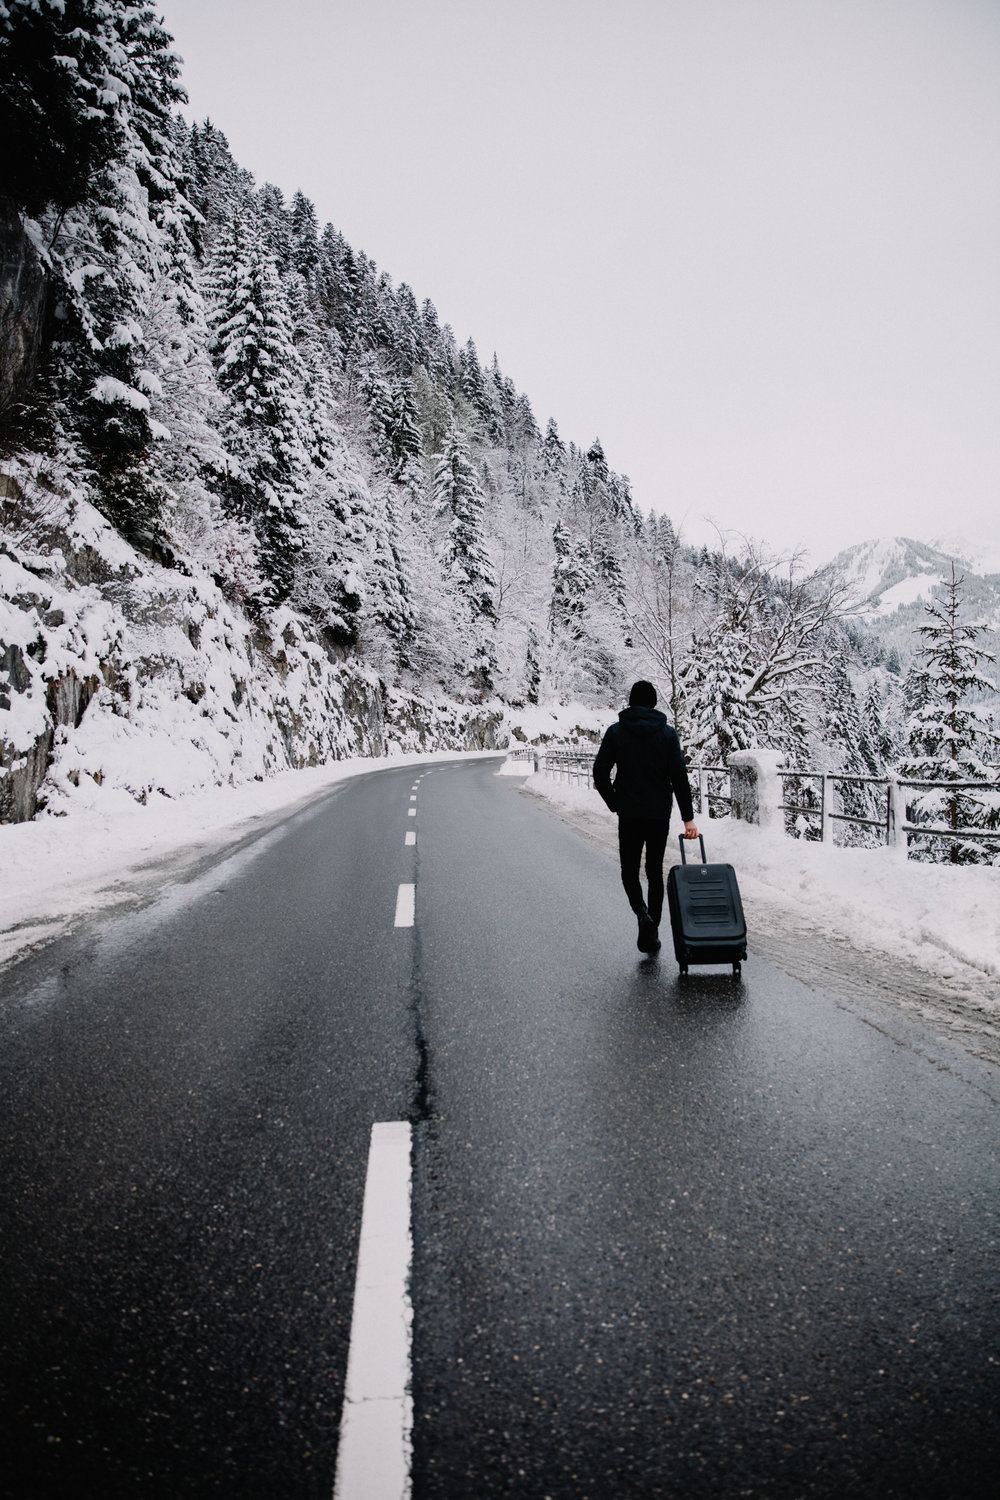 On the roads of the Swiss alps, shot last week on a beautiful snowy day. Check the travel case  here .